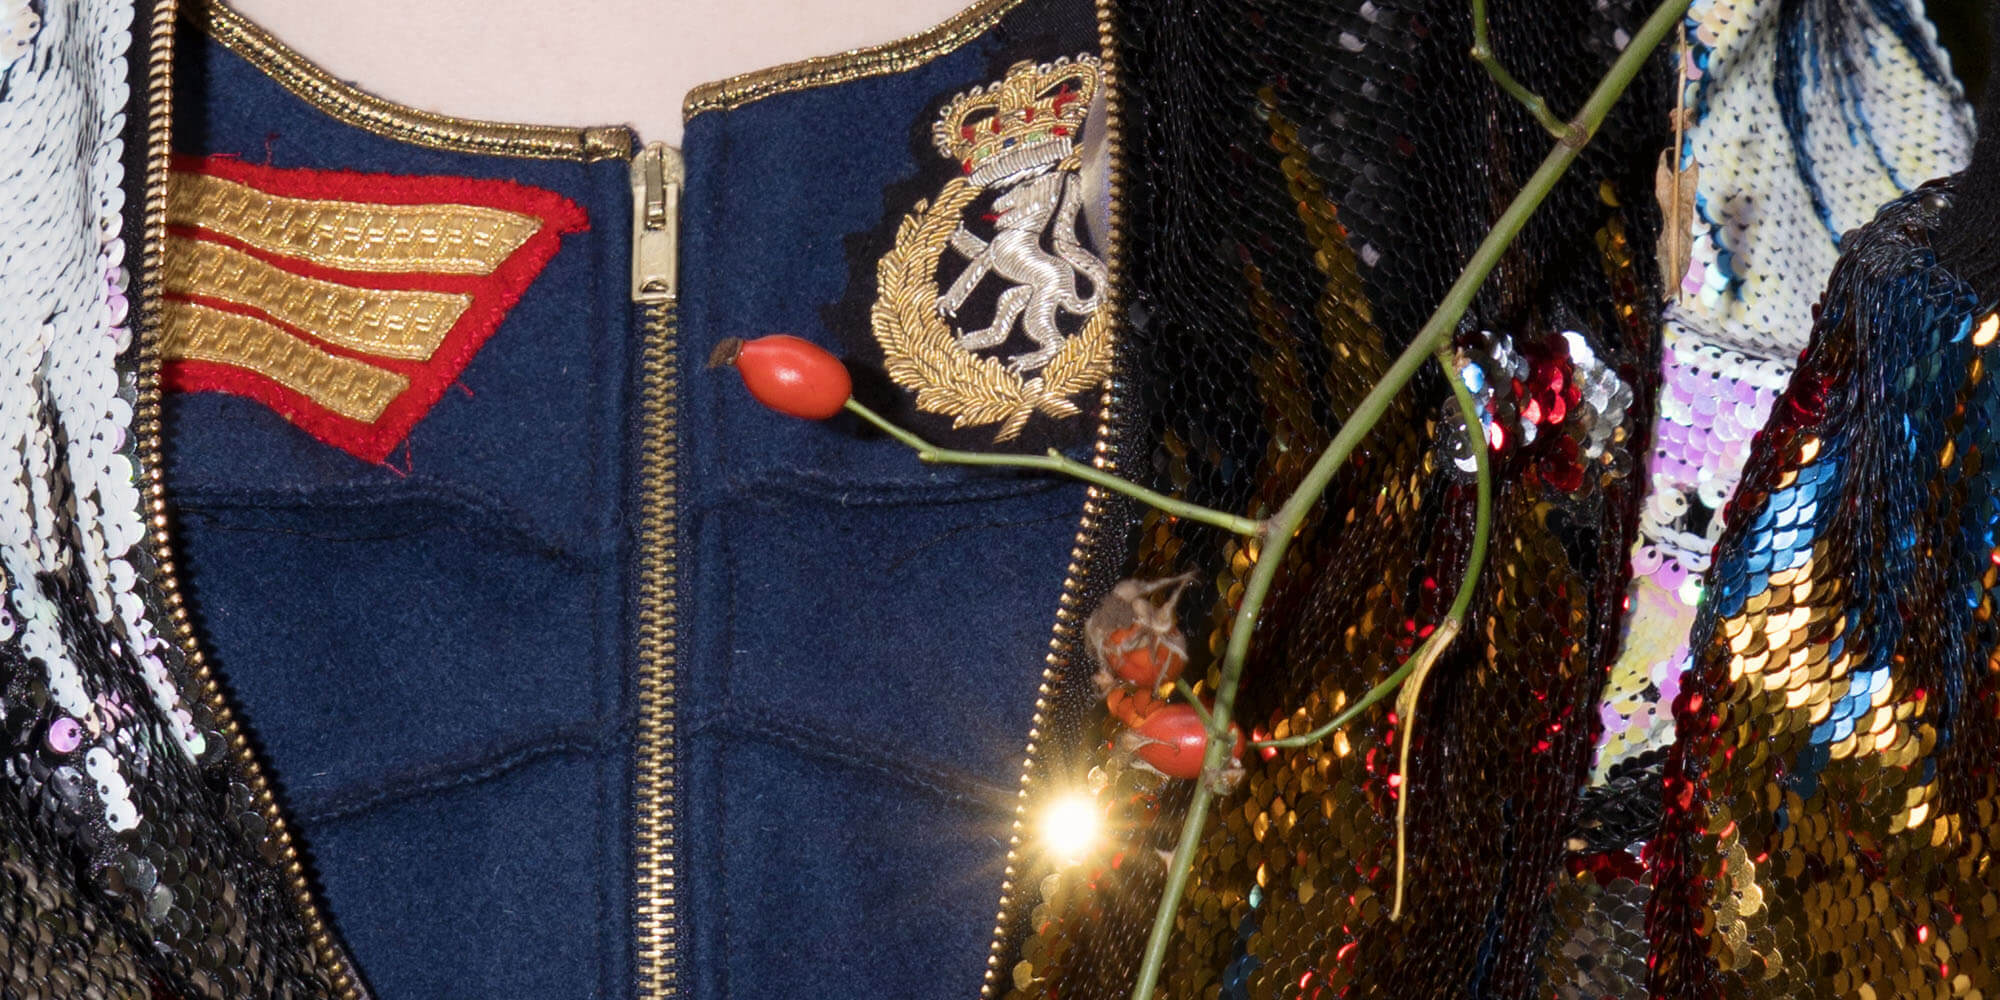 sequin_jacket_navy_top_military_badge.jpg